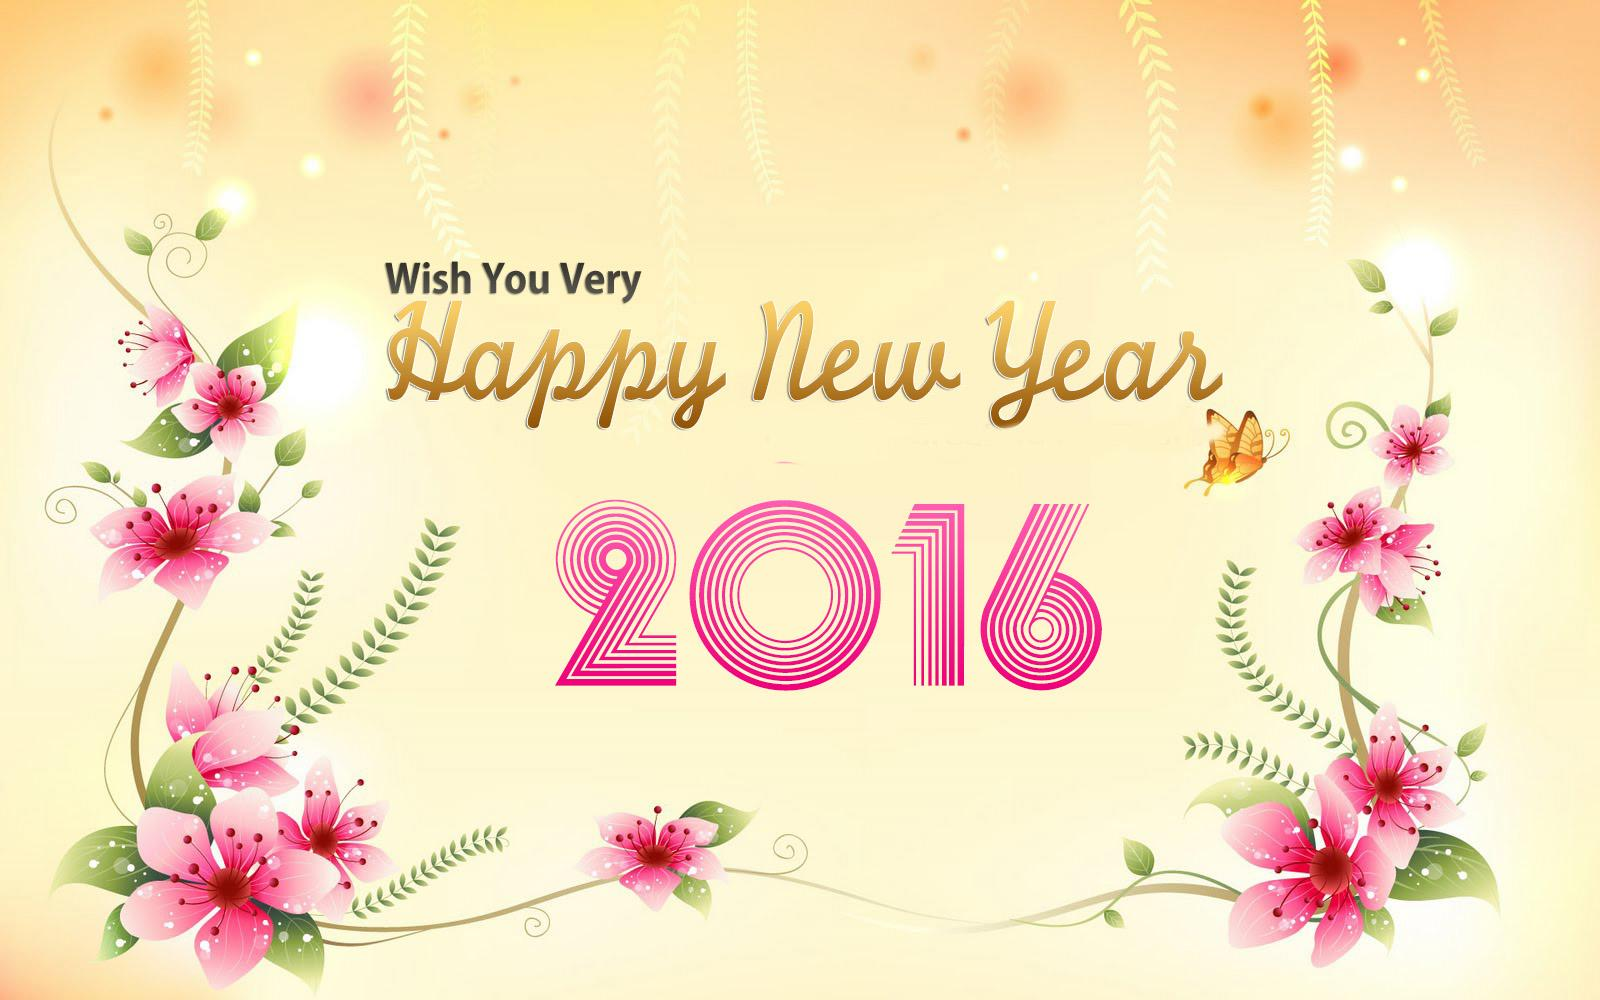 Happy New Year 2016 HD Wallpaper Images Free Download - SU News